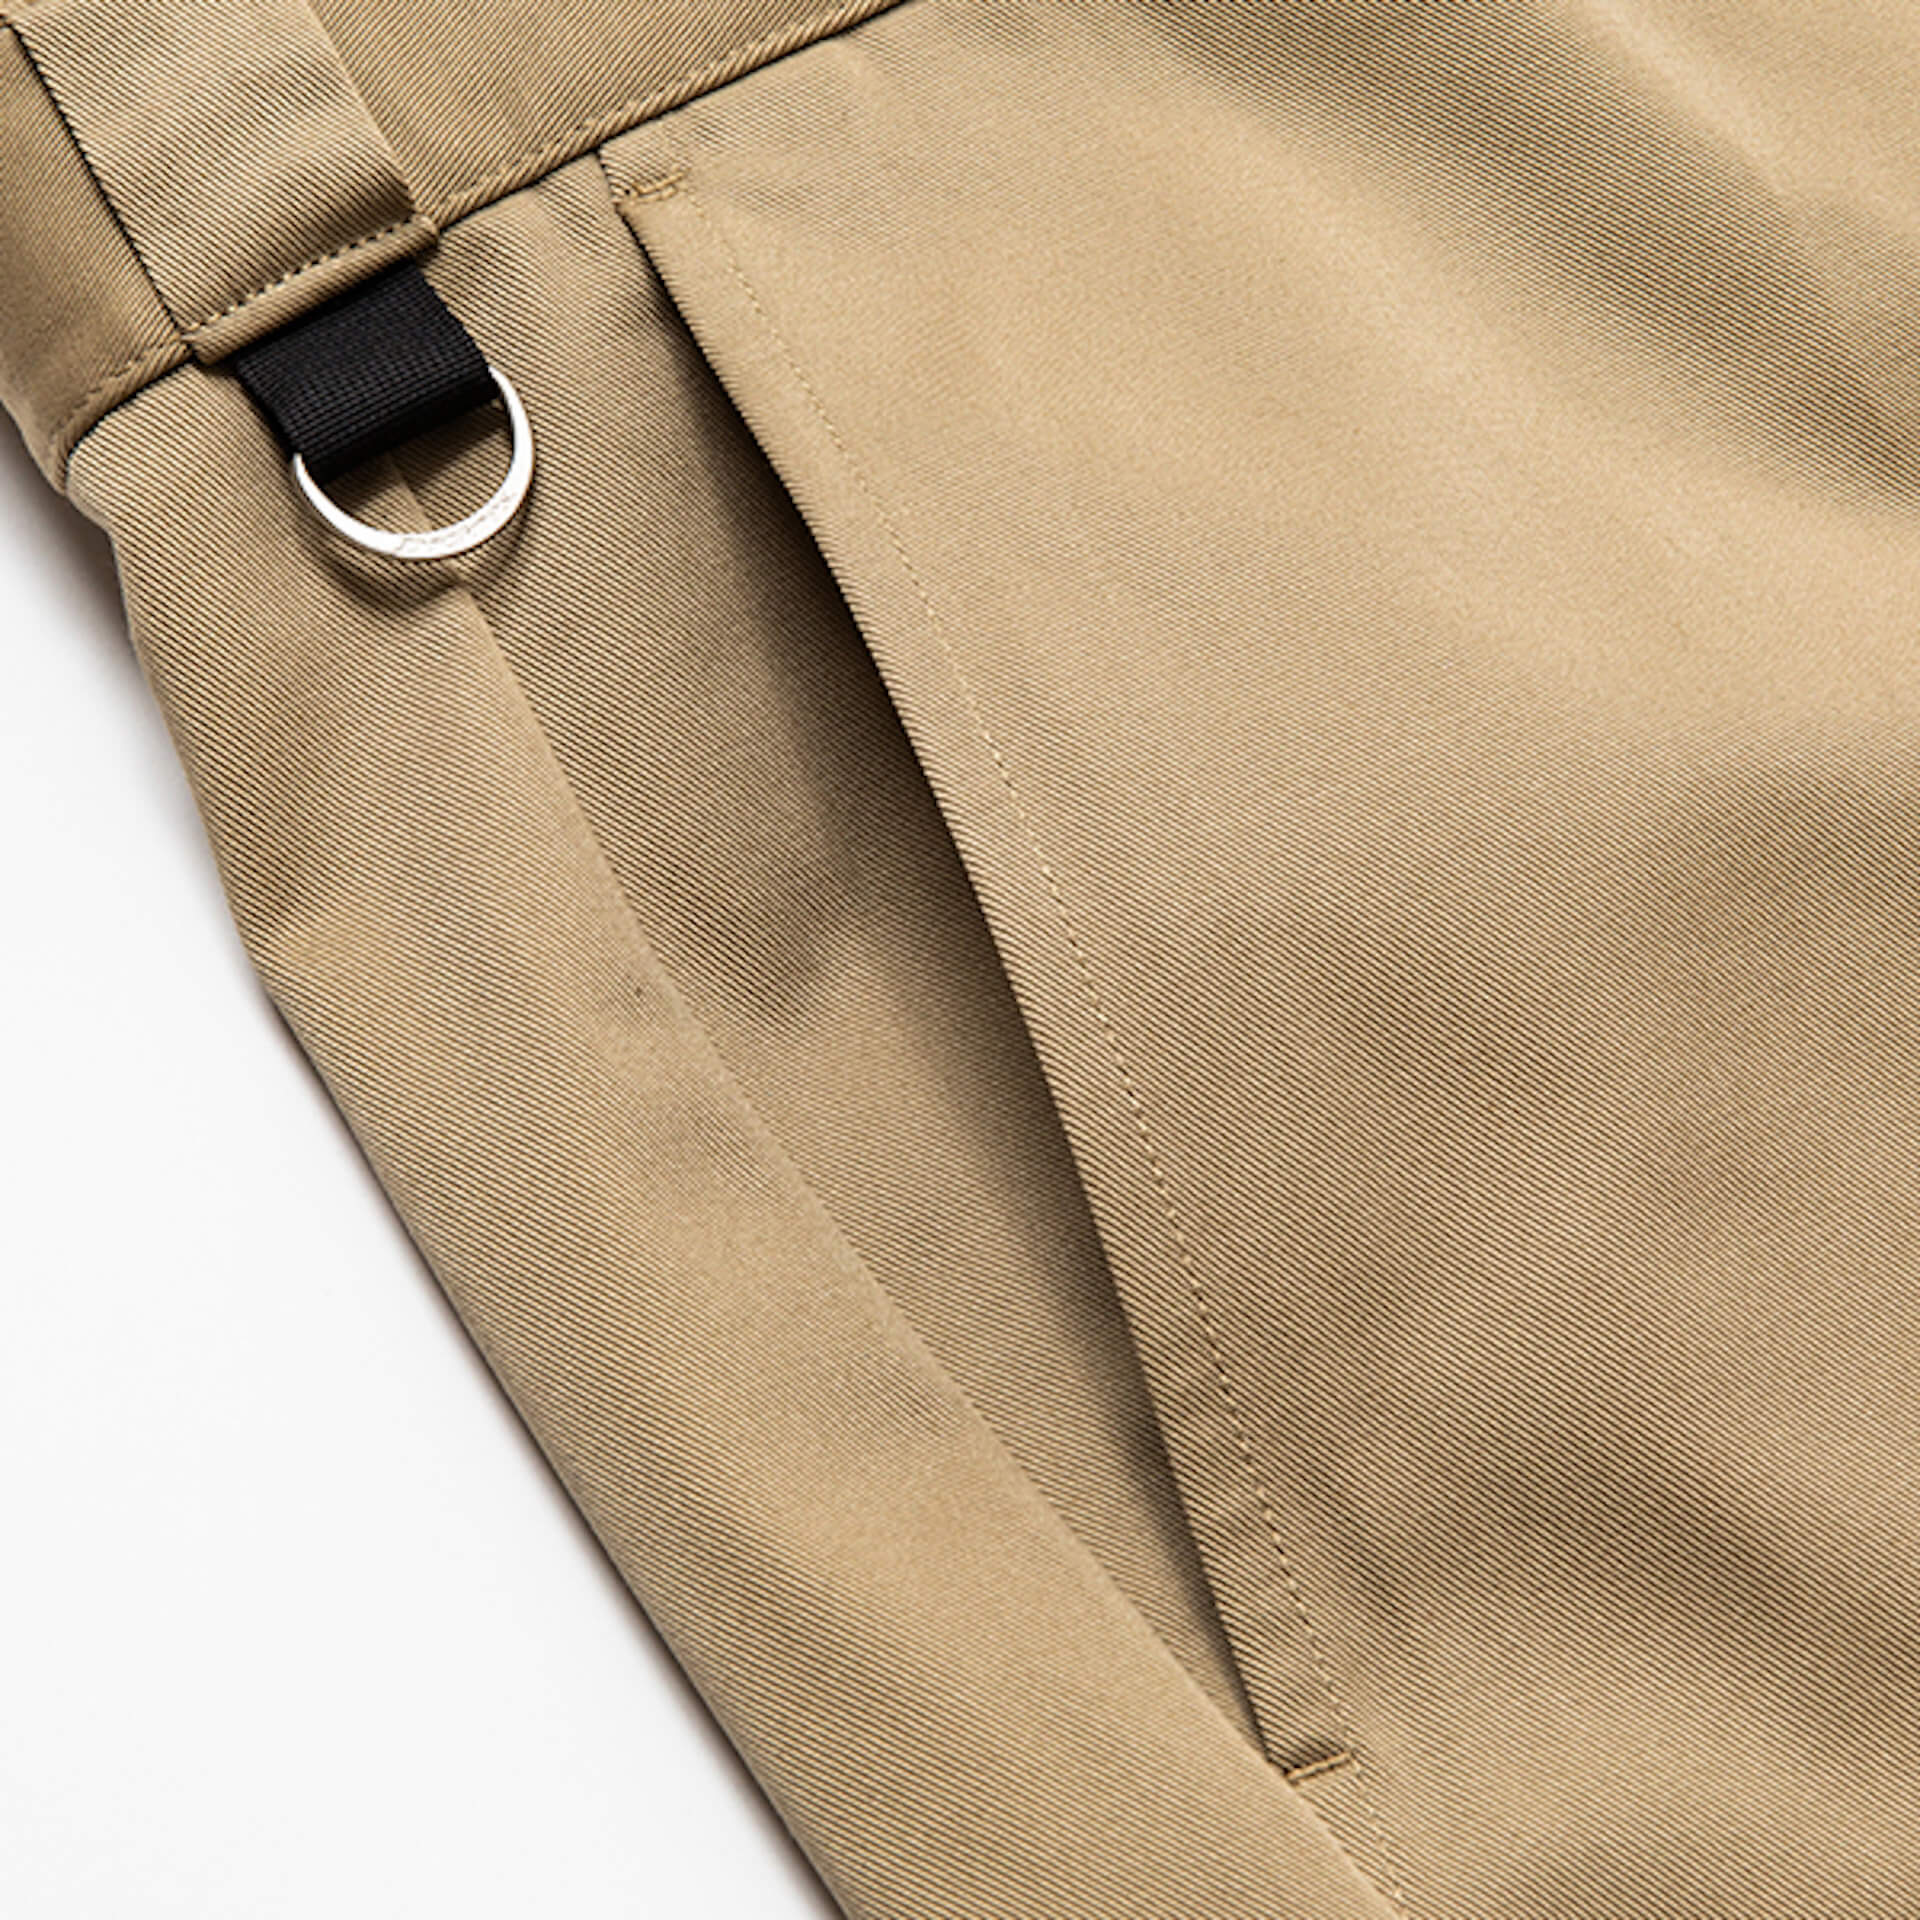 meanswhileとDickiesコラボ第2弾!定番素材を使用したセットアップが登場 life_fashion210901_meanswhile_12_0